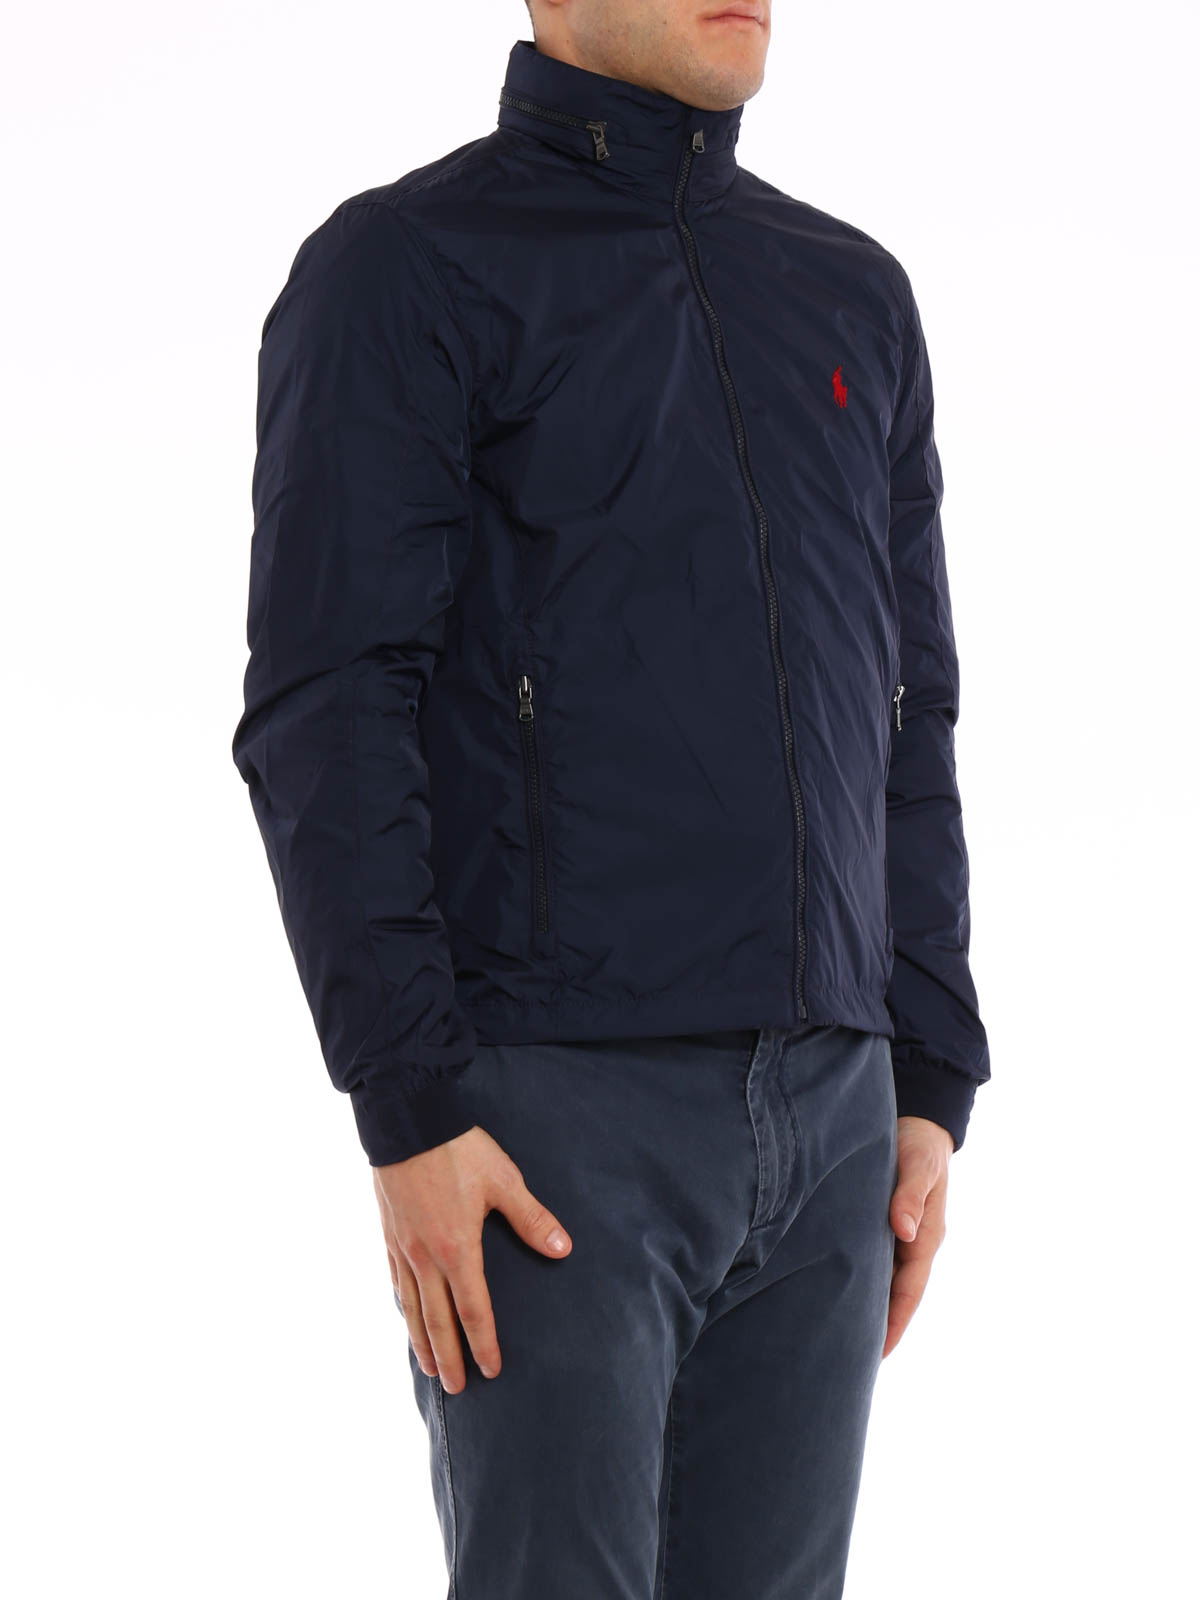 waterproof jacket by polo ralph lauren casual jackets. Black Bedroom Furniture Sets. Home Design Ideas